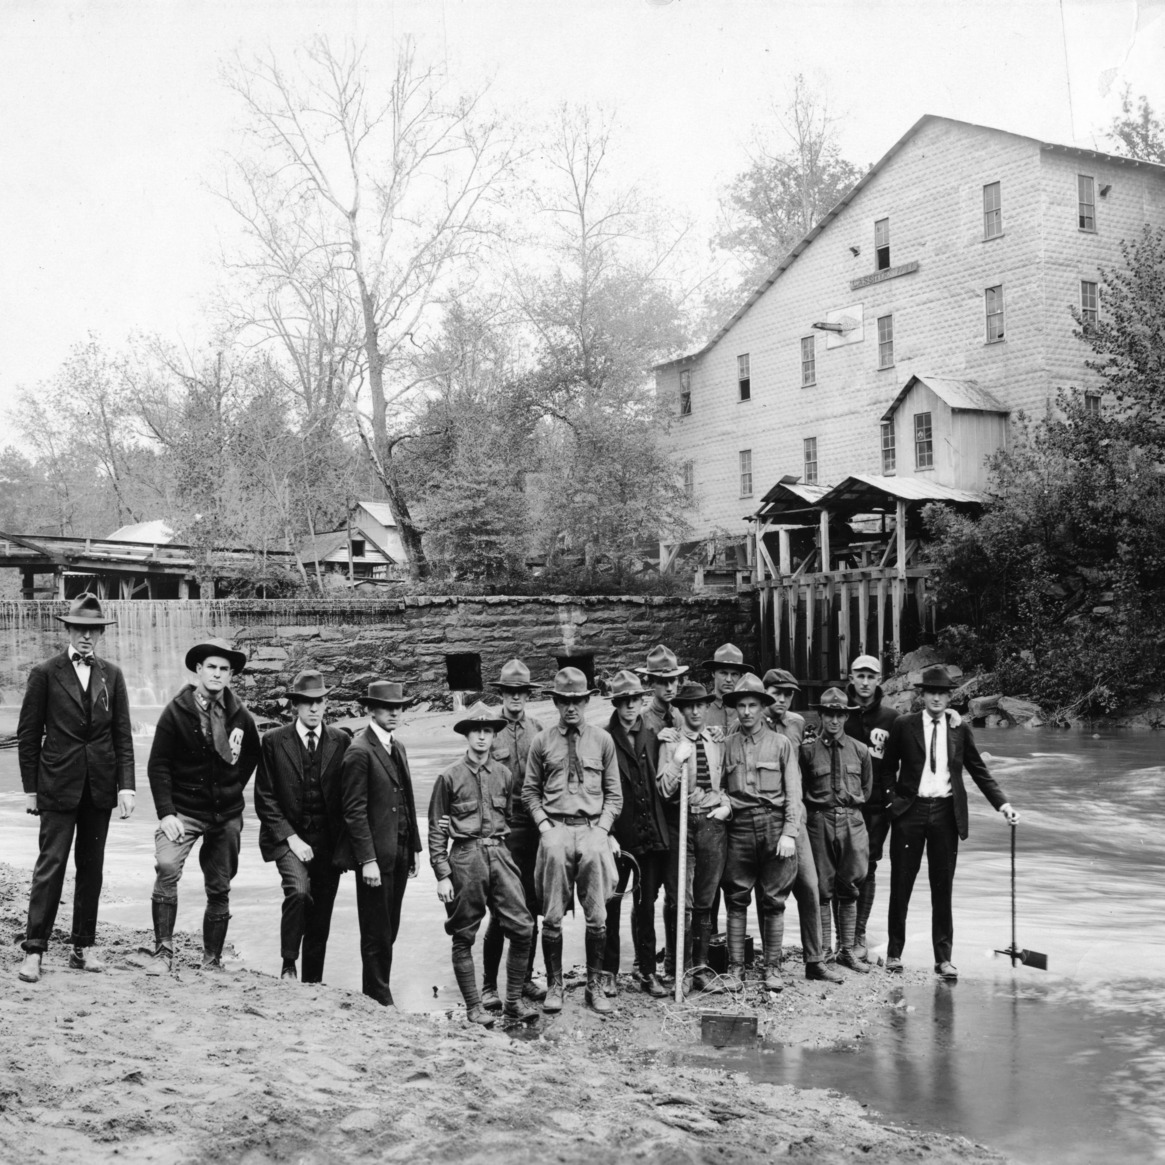 Class in hydraulics, Dept. of Civil Engineering, preparing to measure horsepower of stream, N.C. State College, Raleigh, N.C., 1920s?